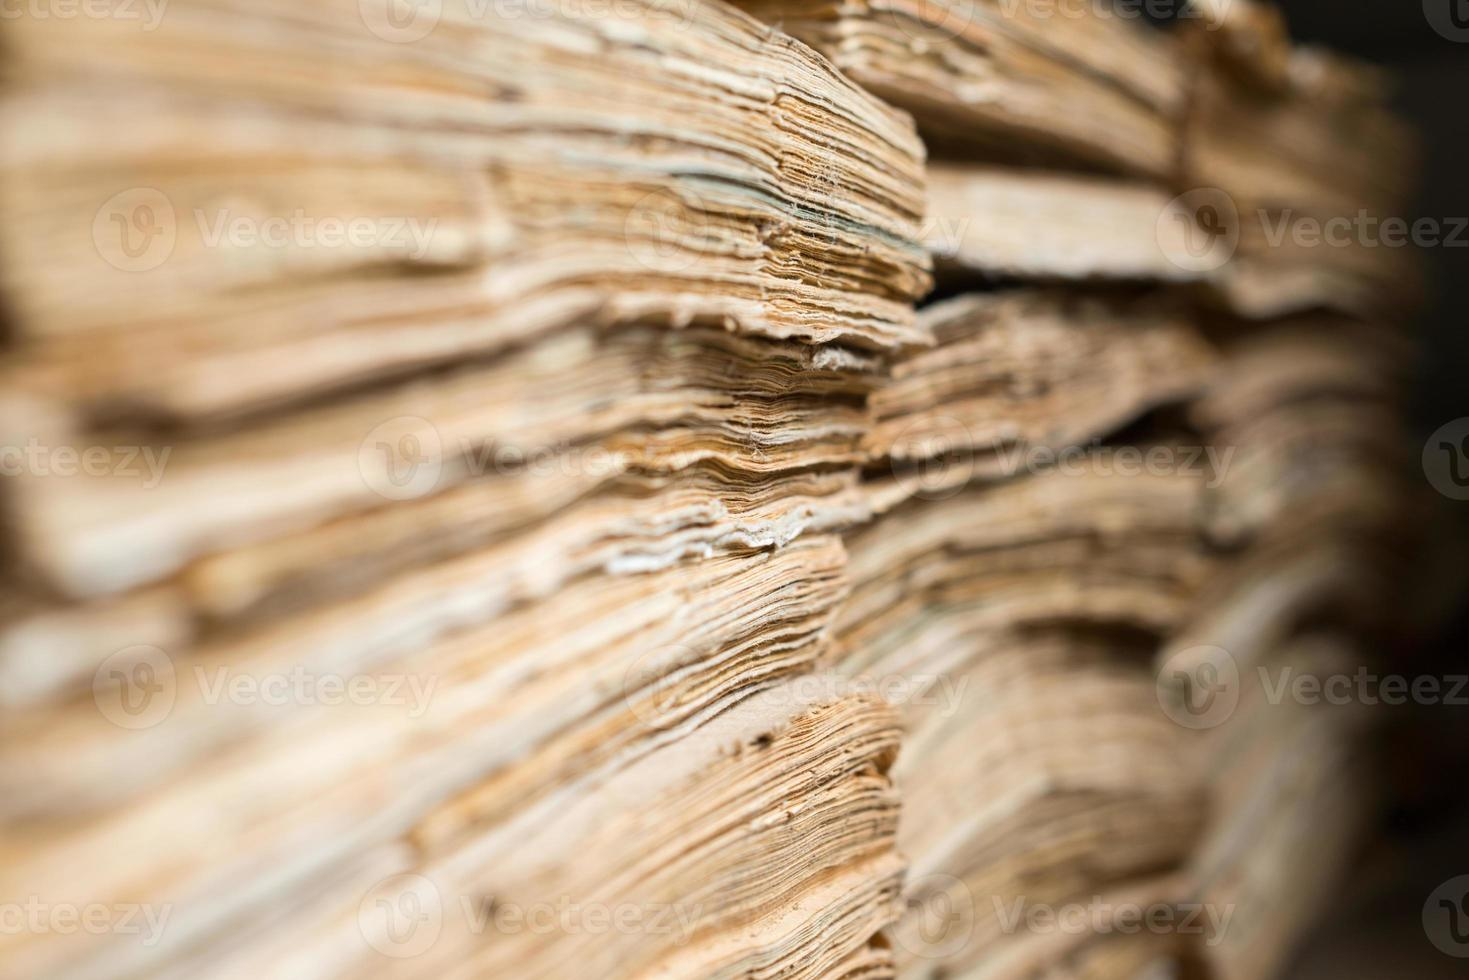 Old paper documents in the archive photo